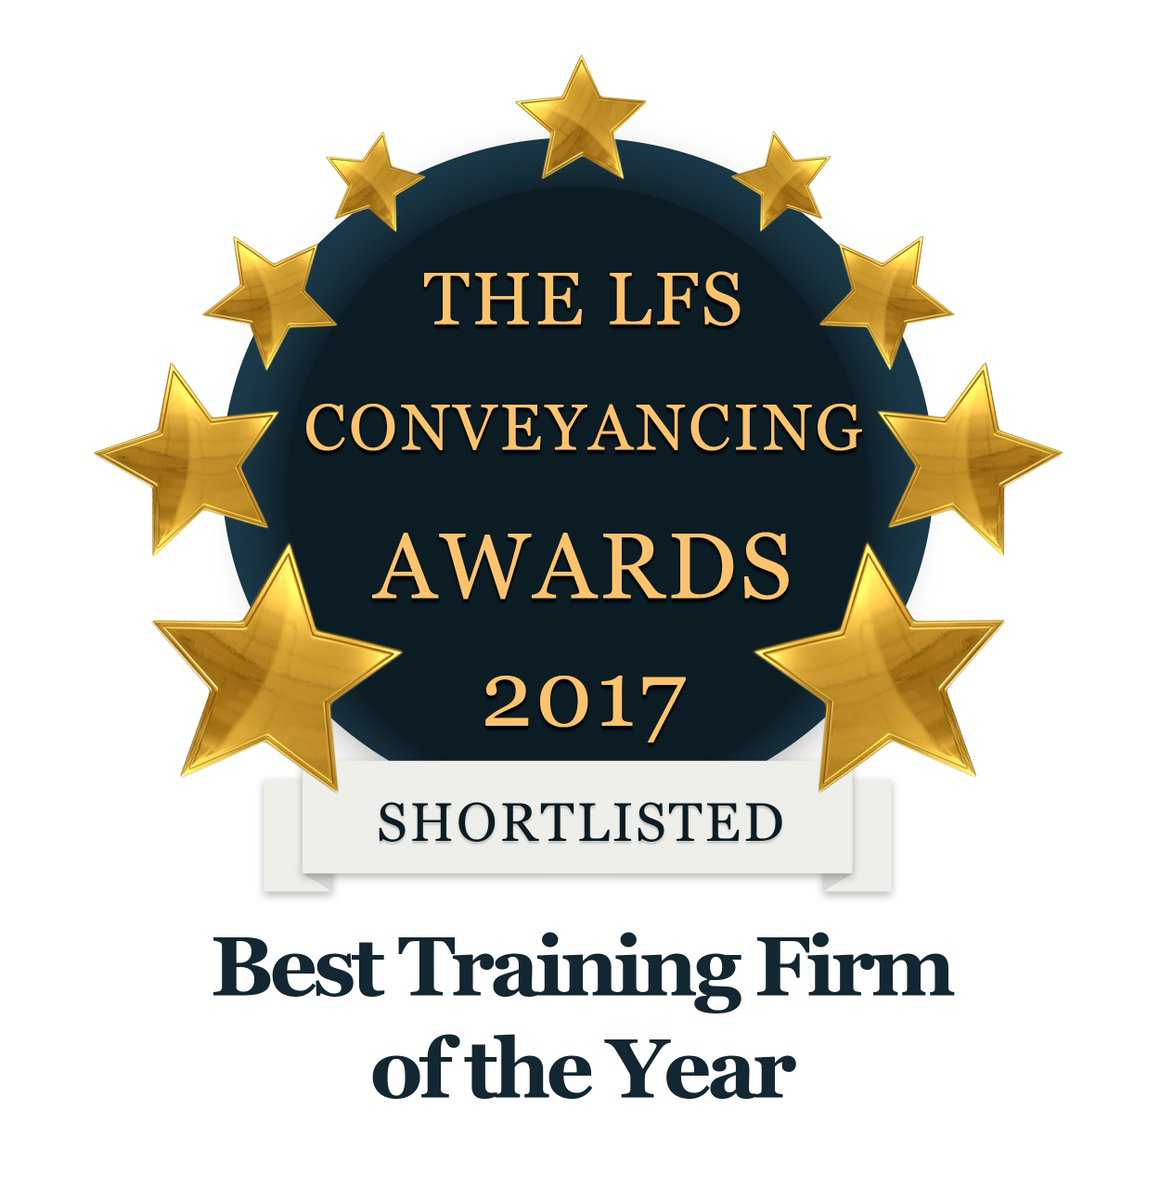 We are delighted to be shortlisted for Best Training Firm of the Year at this years @lfsconvawards #awards #legal #training<br>http://pic.twitter.com/QDWE08aaub